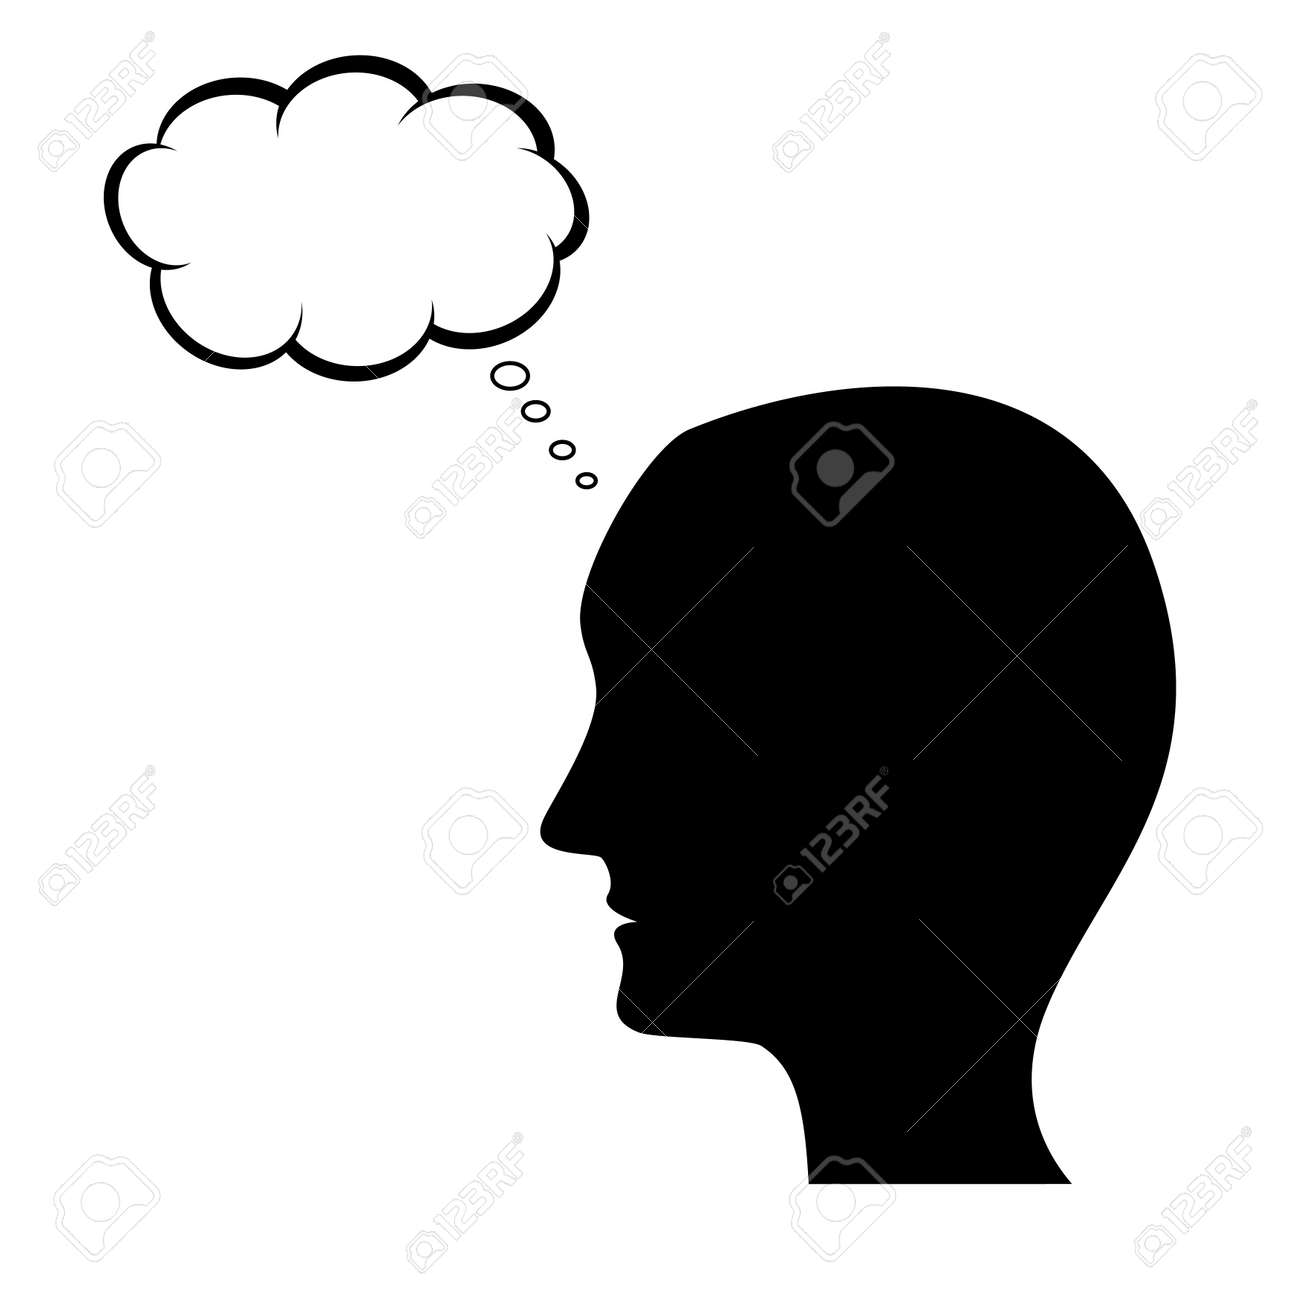 Thinking Man Silhouette With Thought Bubble Royalty Free Cliparts ... for Person Thinking Silhouette  17lplyp